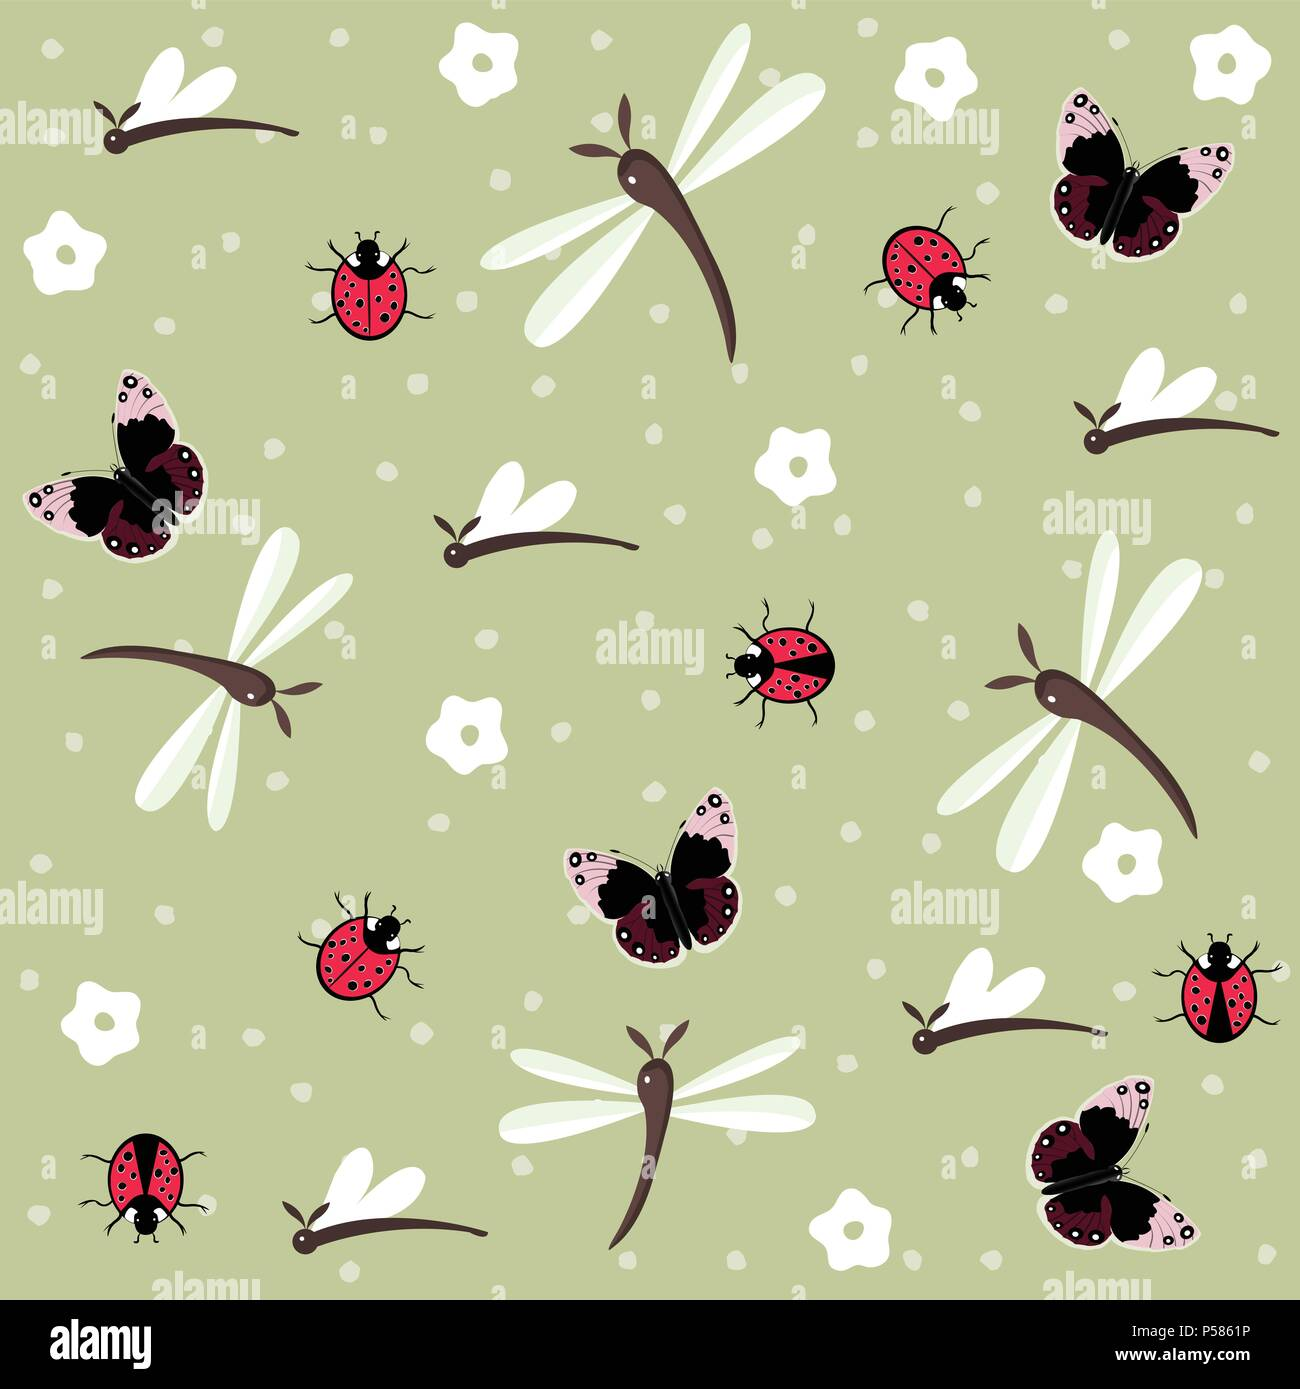 Insects seamless floral pattern - Stock Vector